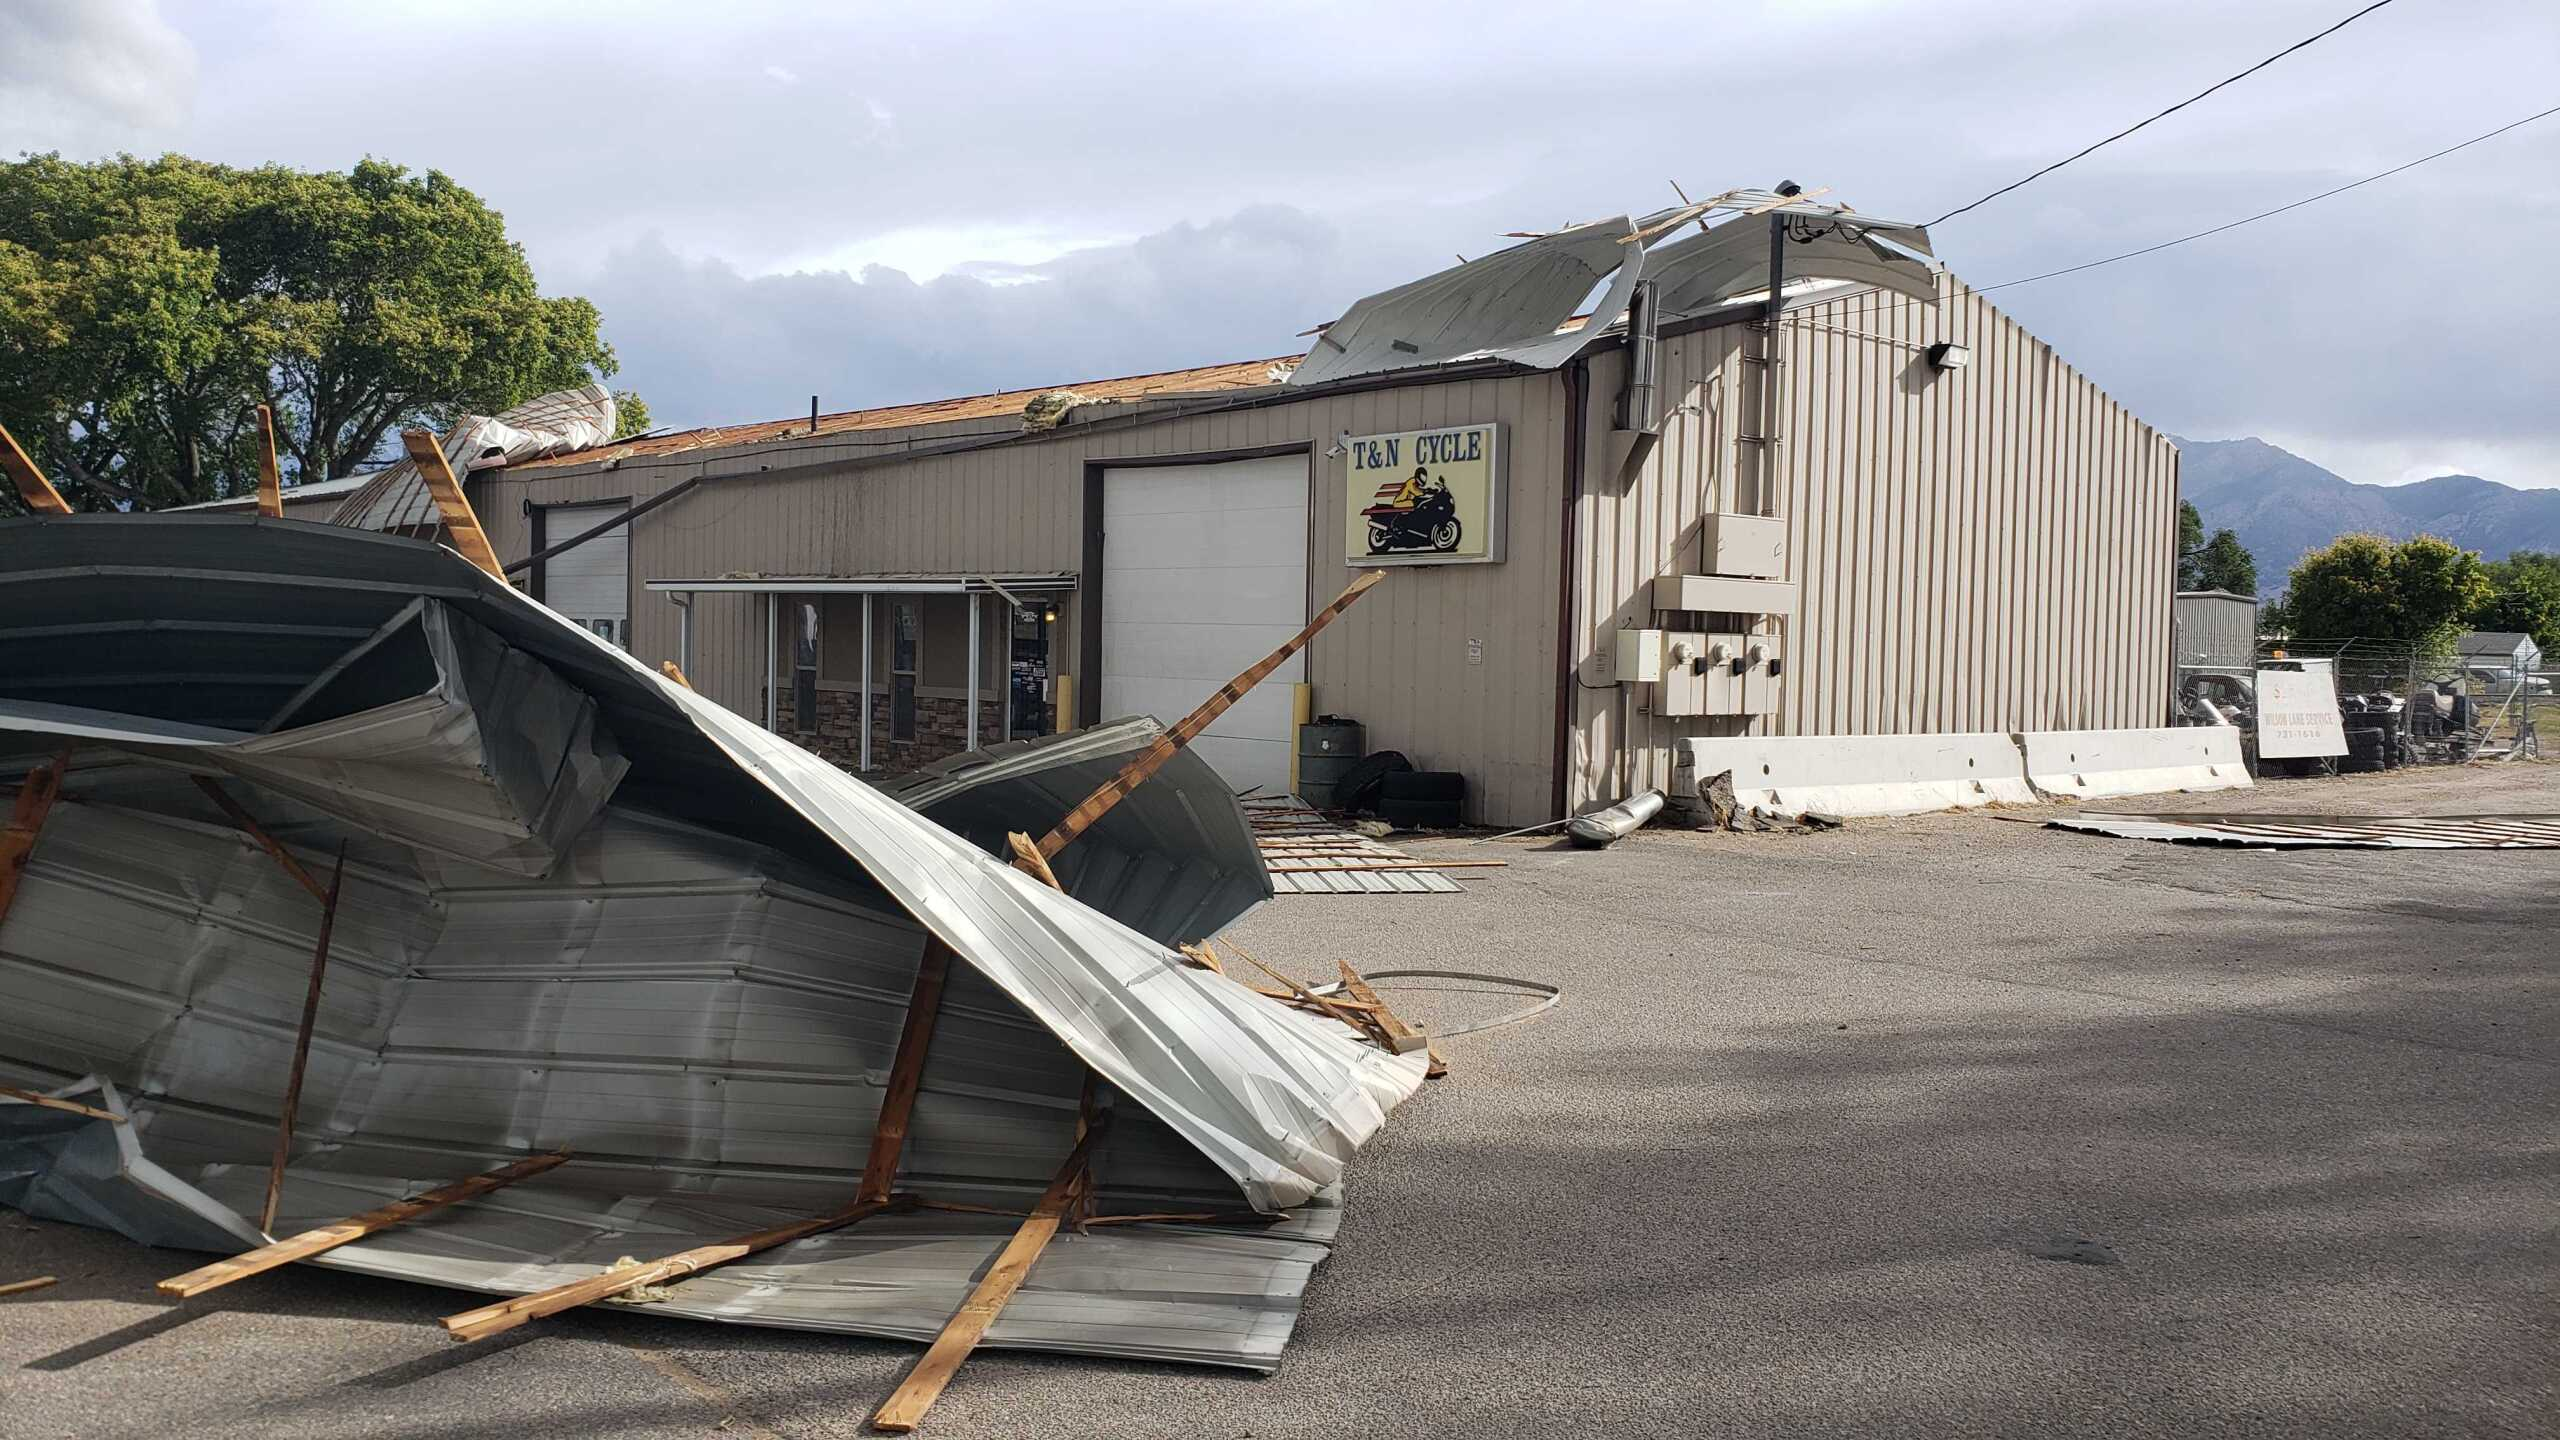 Roof ripped off T and N Cycle in Ogden3.jpg